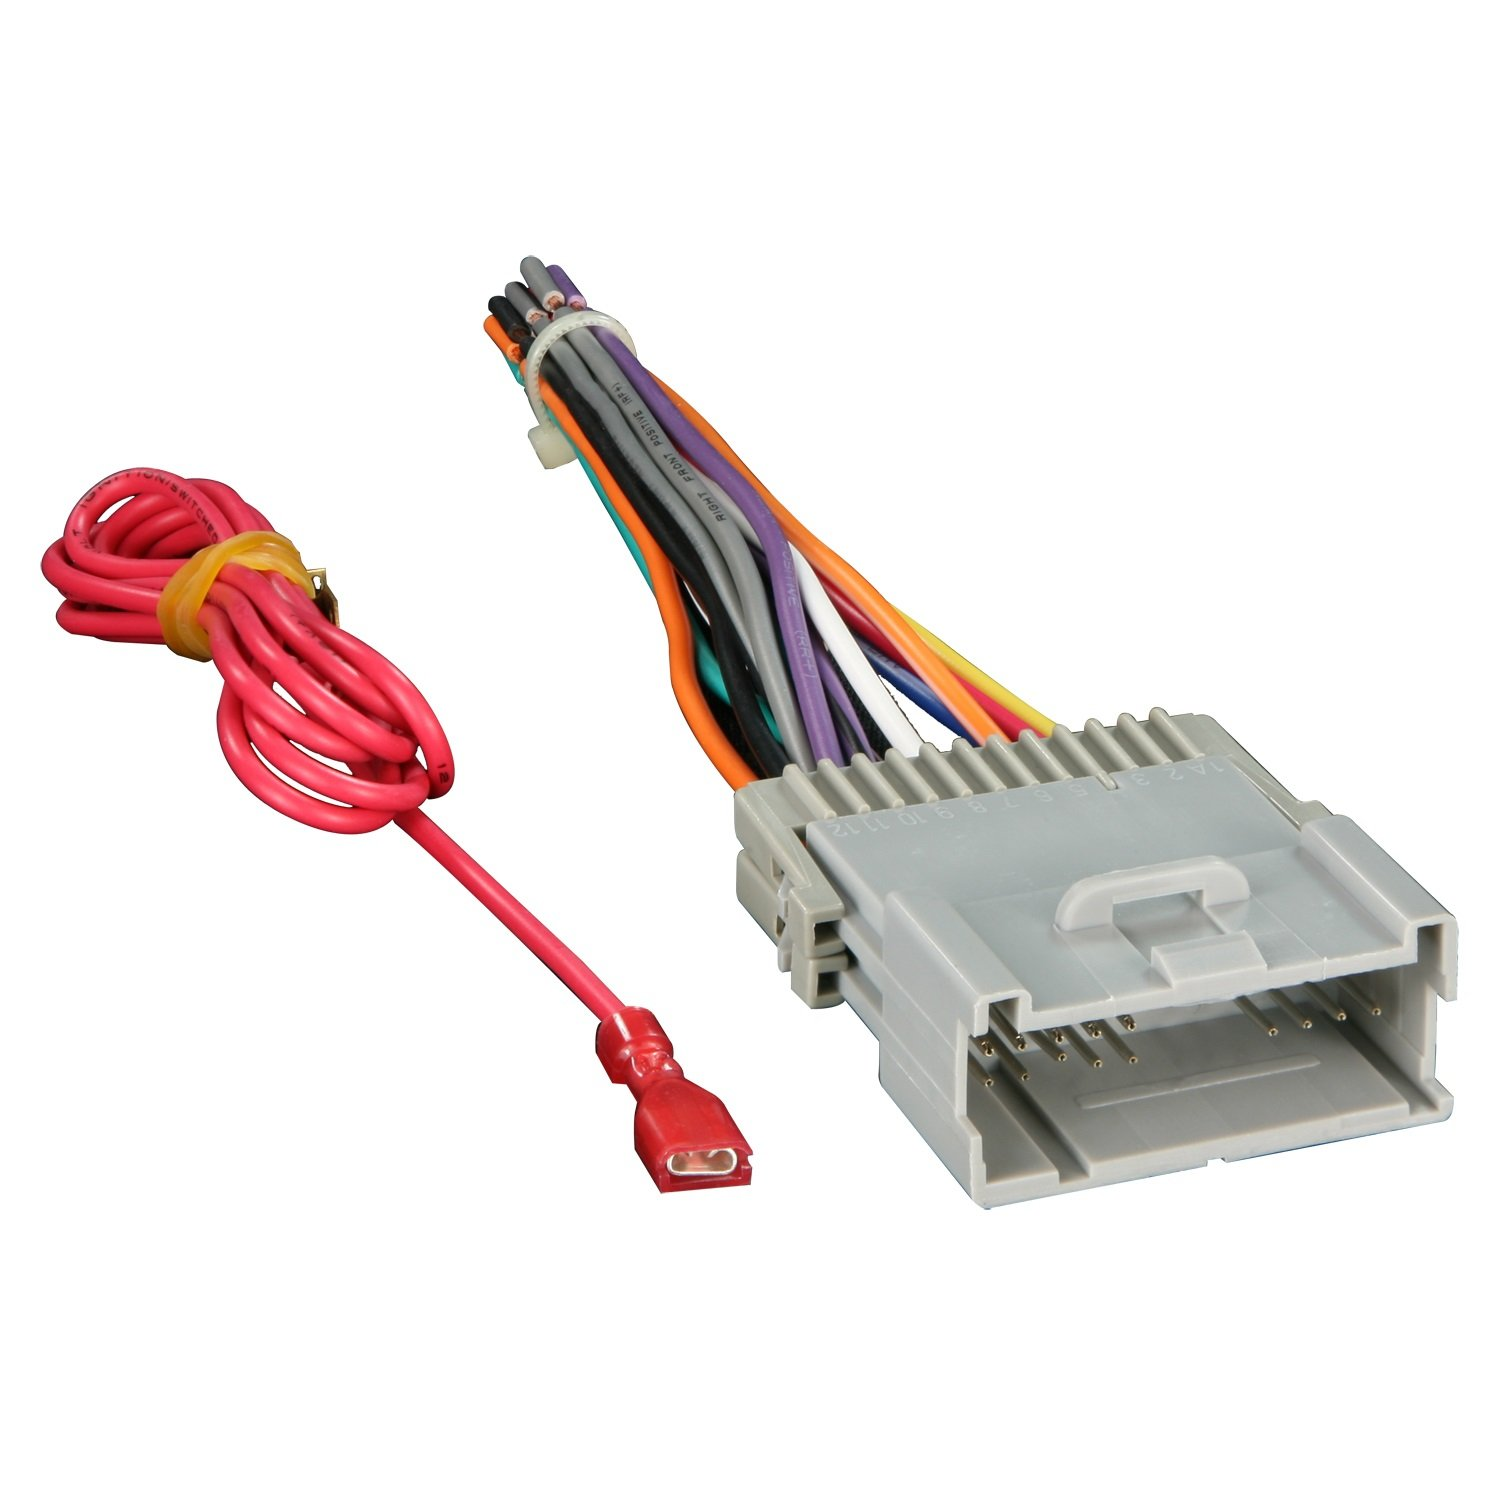 61eewxp9orL._SL1500_ amazon com metra 70 2003 radio wiring harness for gm 98 08 2008 chevy silverado 1500 radio wiring diagram at edmiracle.co